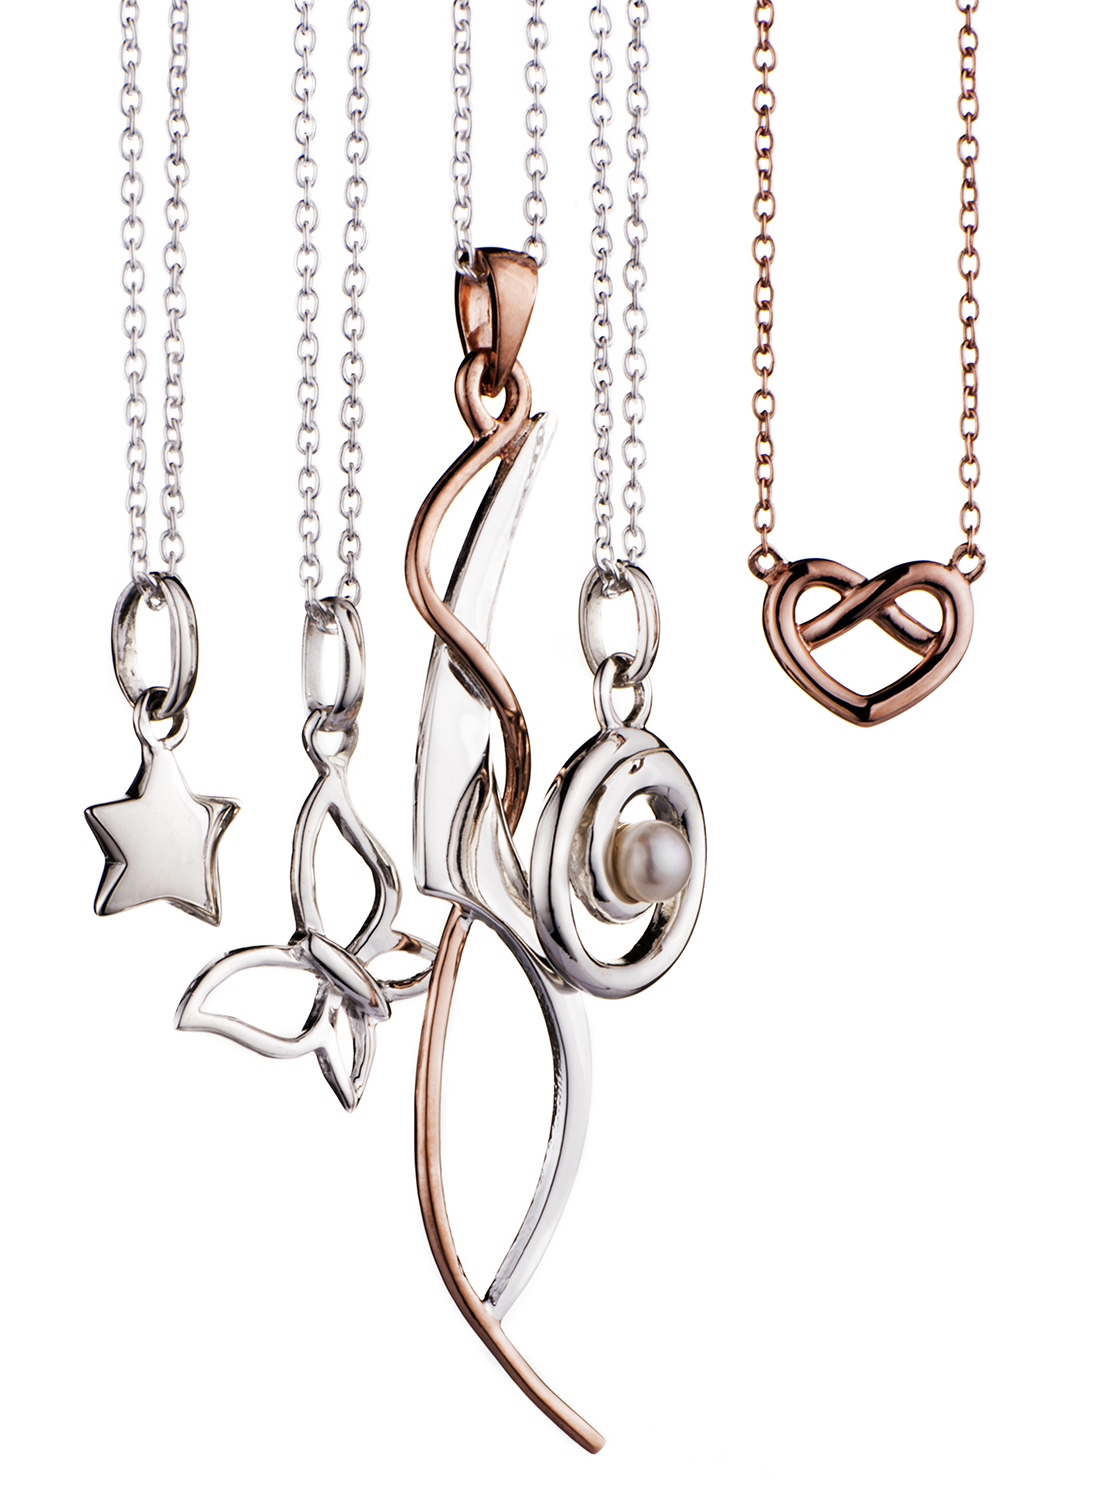 Jewellery photography of 5 hanging necklaces